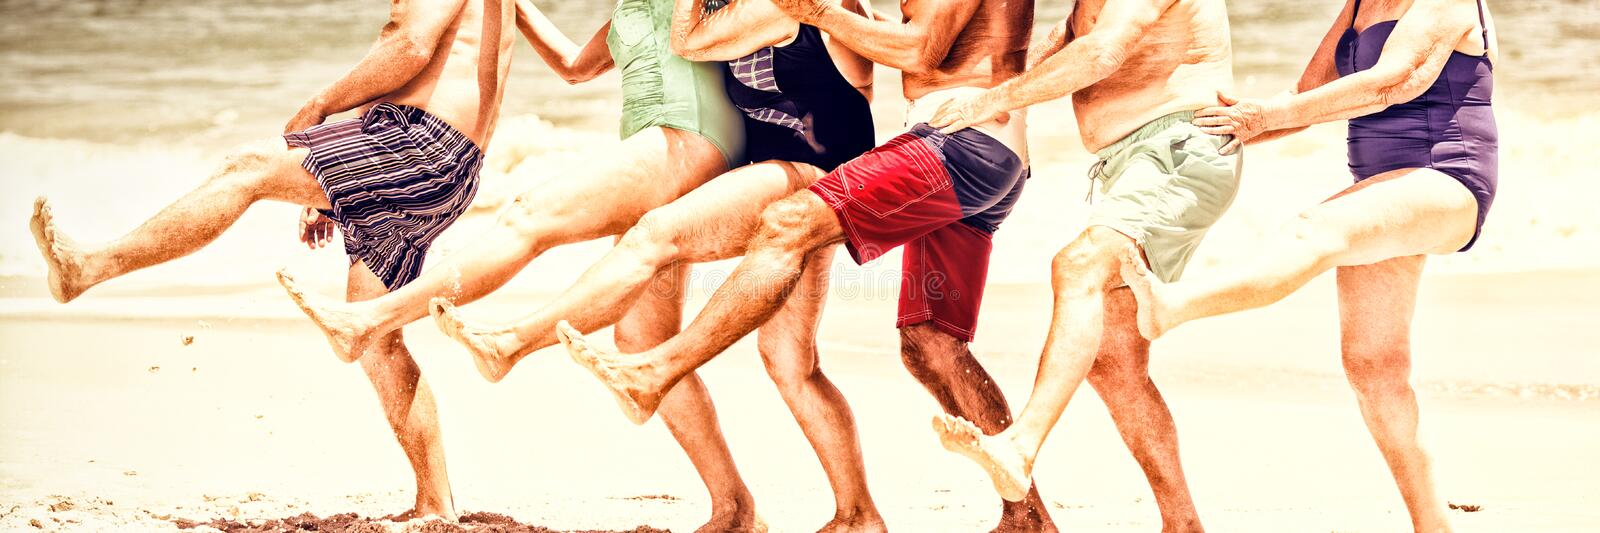 Seniors dancing in a row at the beach royalty free stock images